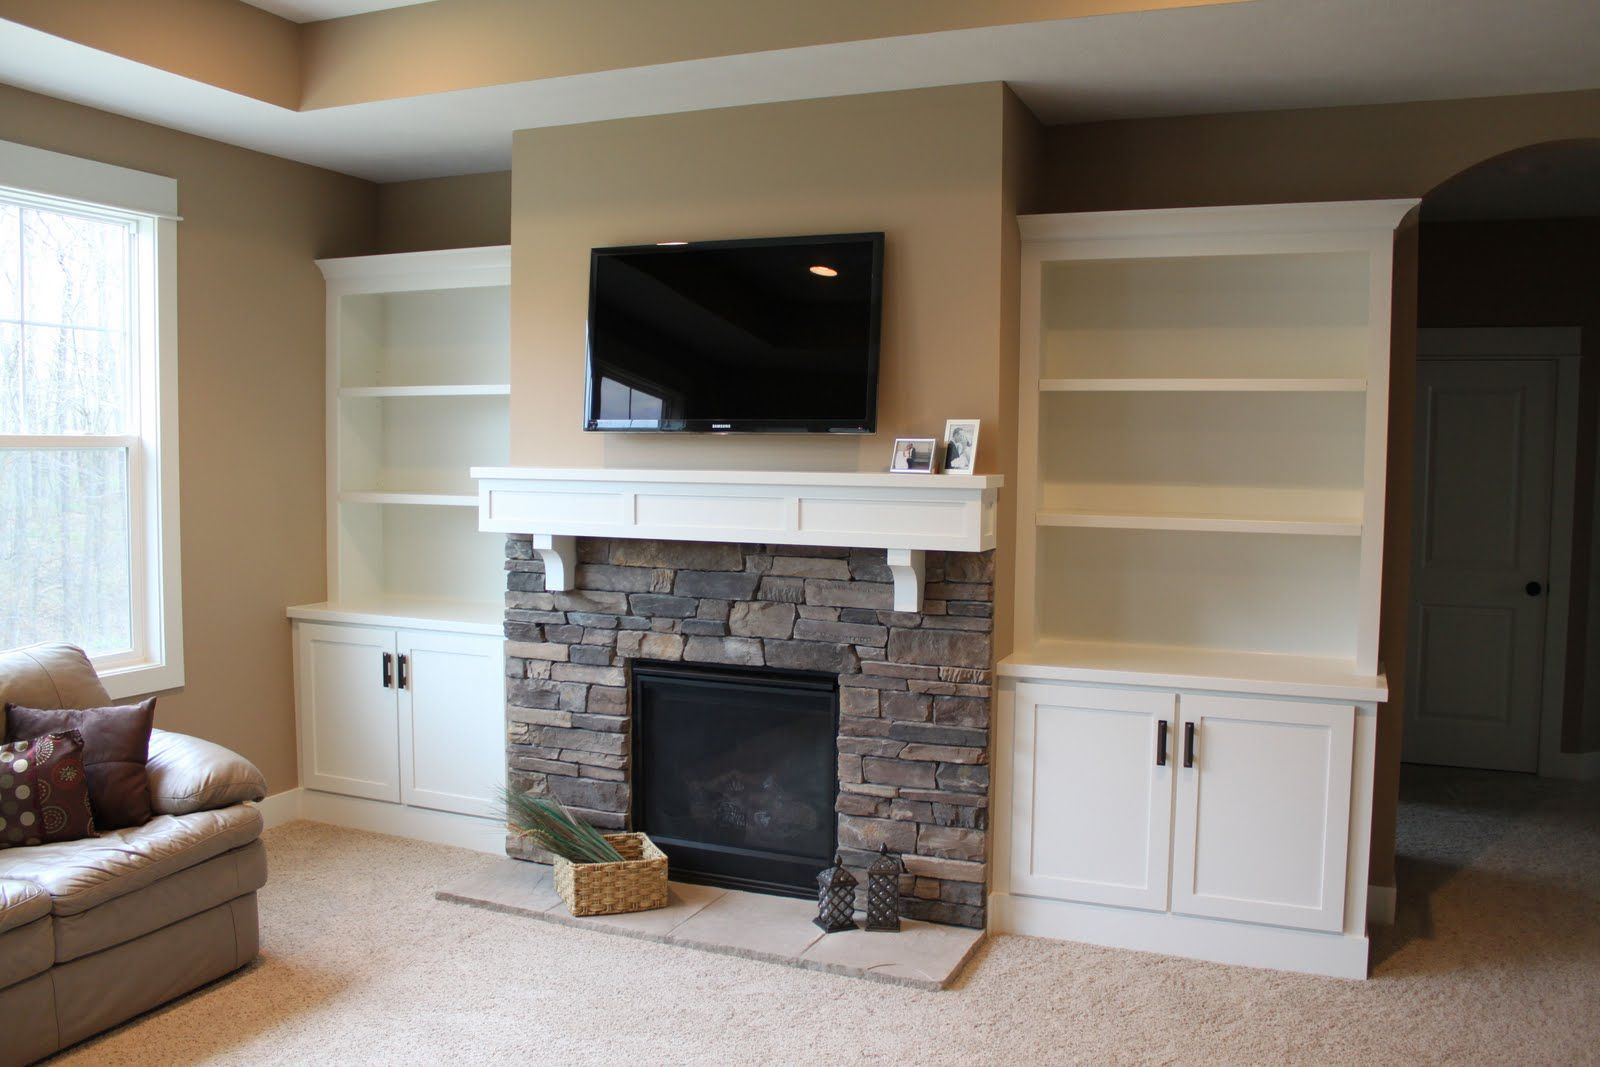 Shelves and cupboards by fireplace tv over fire place for the shelves and cupboards by fireplace tv over fire place solutioingenieria Image collections